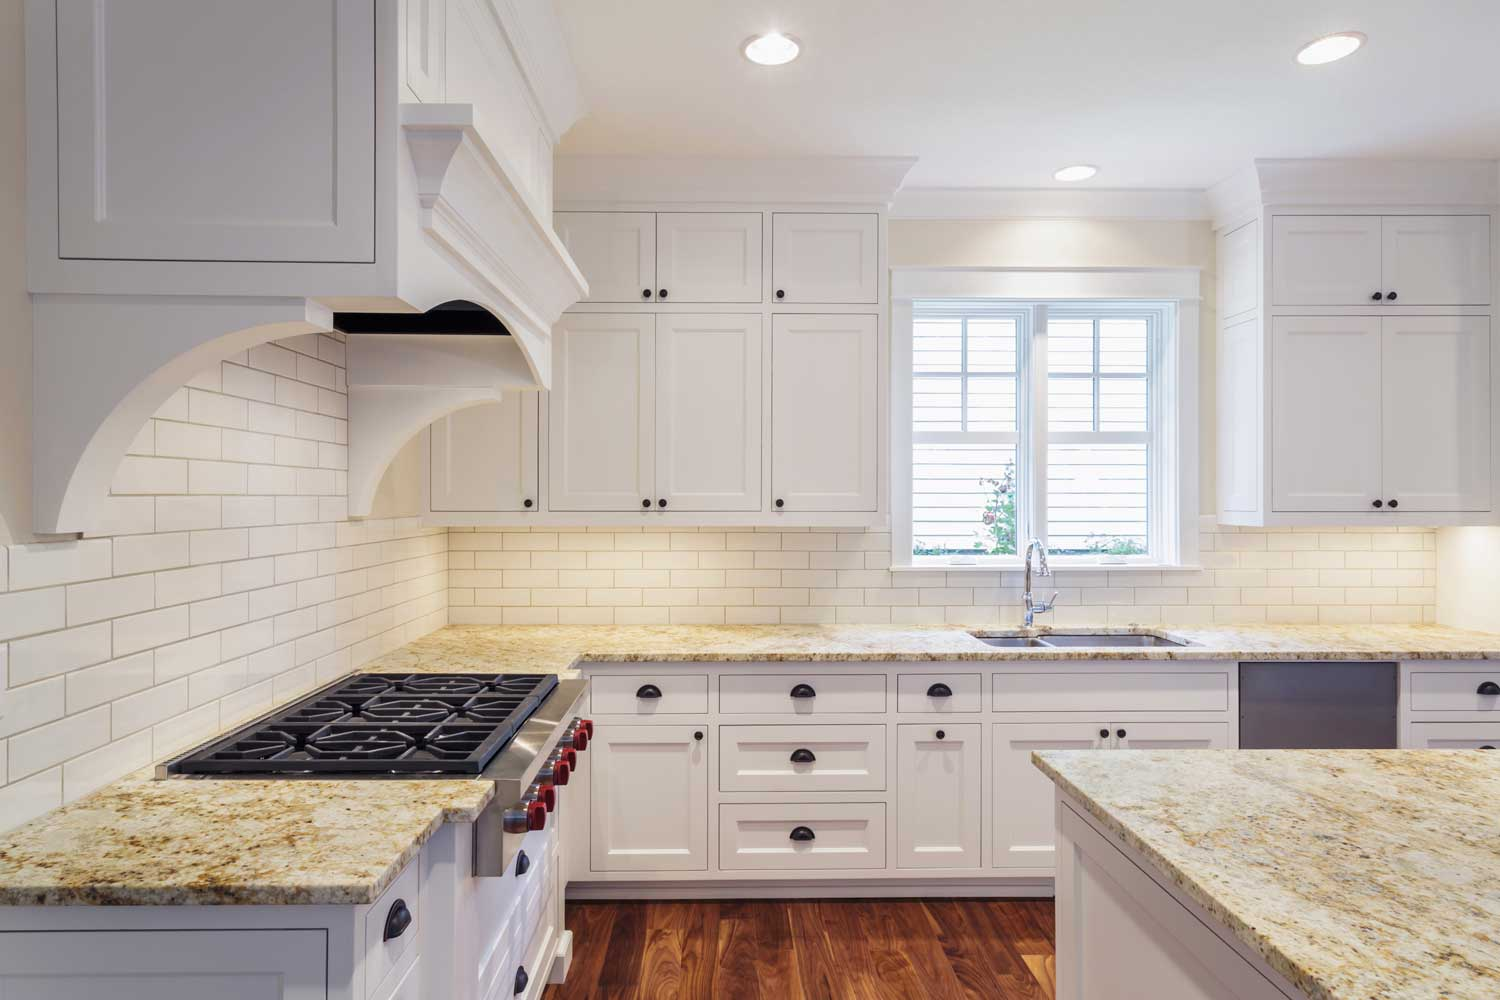 54539-counters-and-cabinets-in-luxury-kitchen-QCM47BH-web